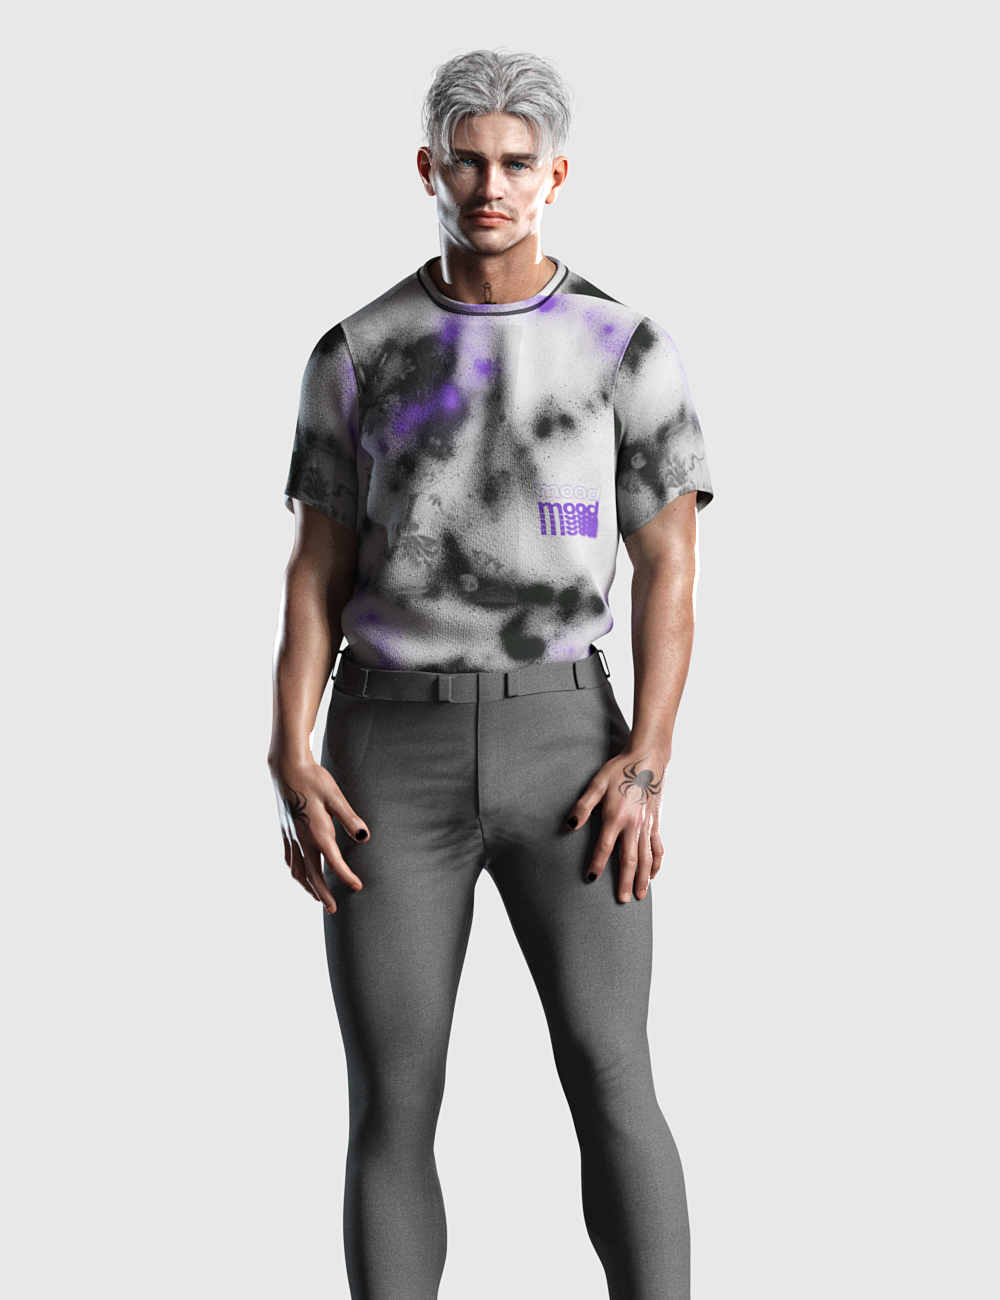 dForce Tucked Tee Textures by: Romeo, 3D Models by Daz 3D